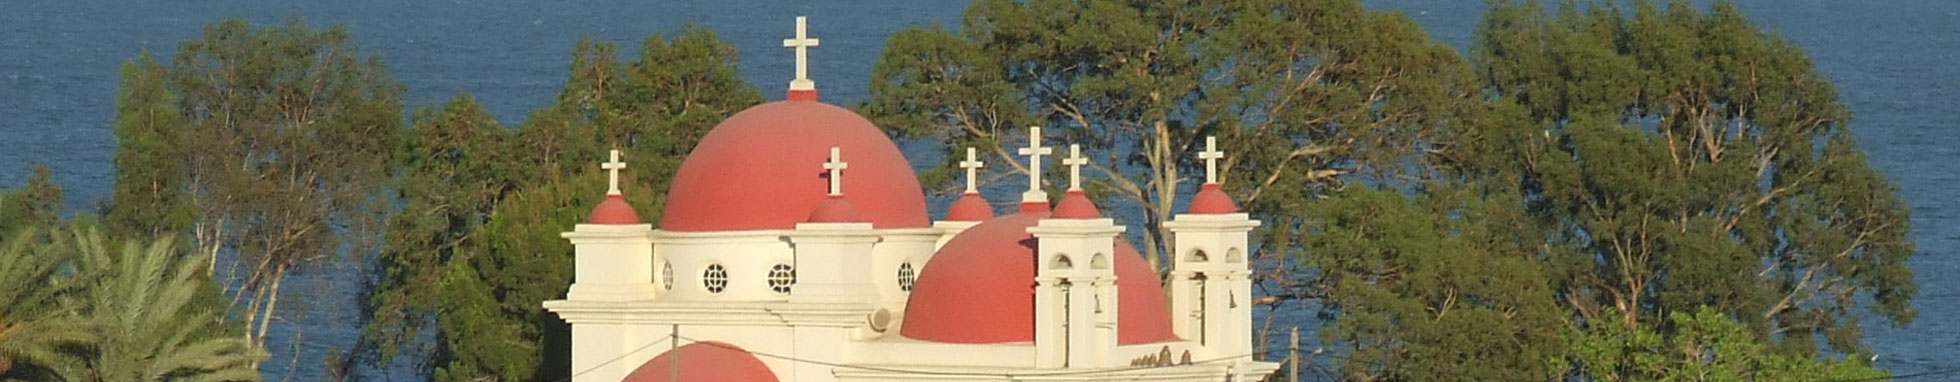 Israel Christian Theme Tours for Groups